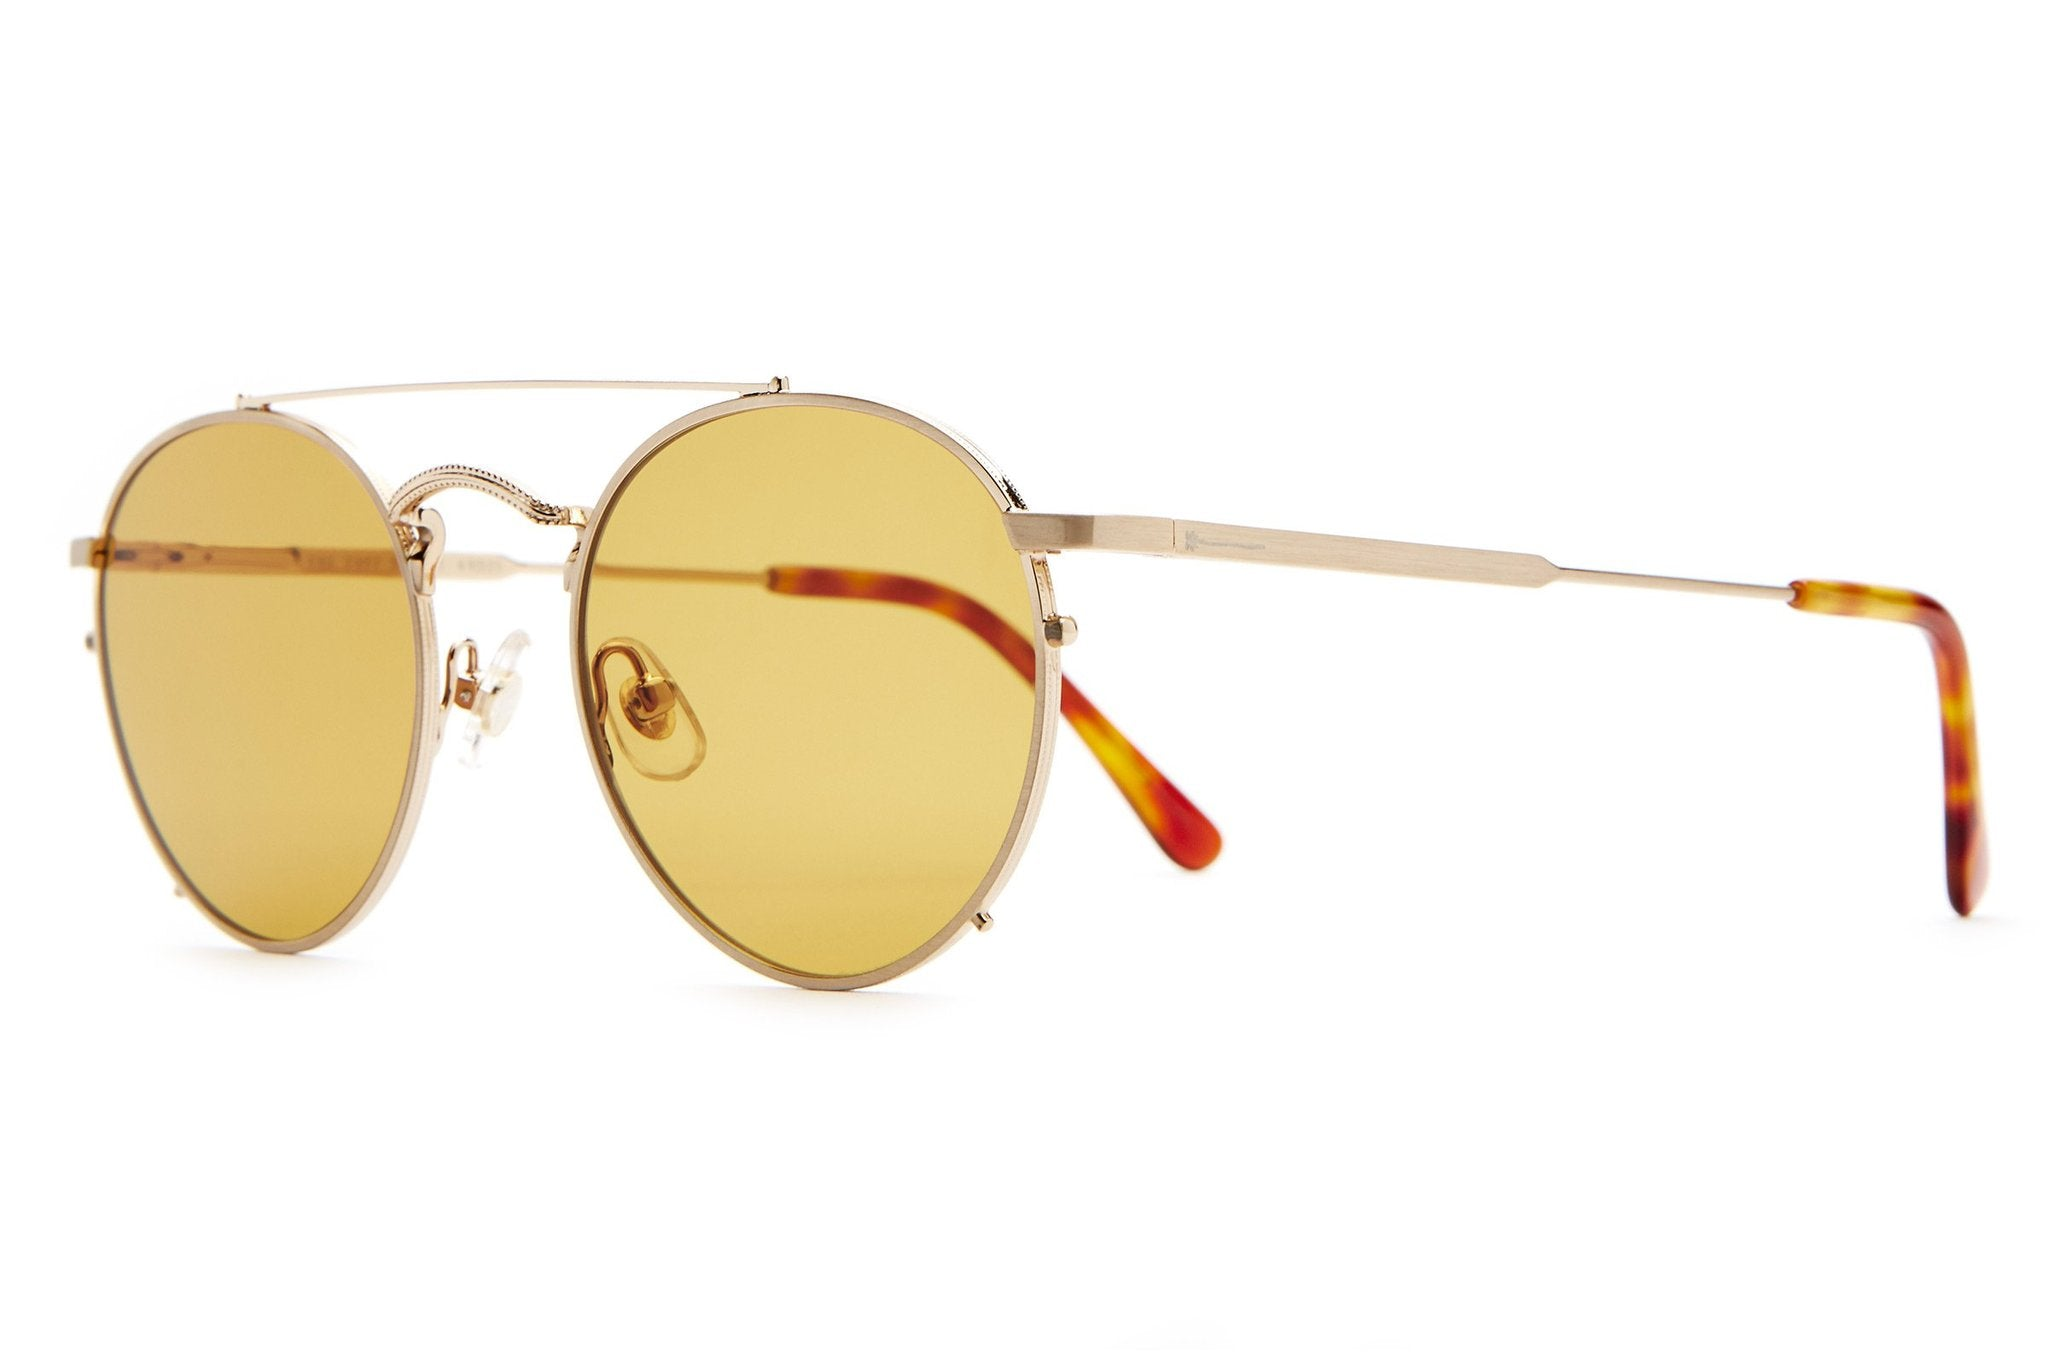 THE TUFF SAFARI / BRUSHED GOLD &  MUSTARD LENS